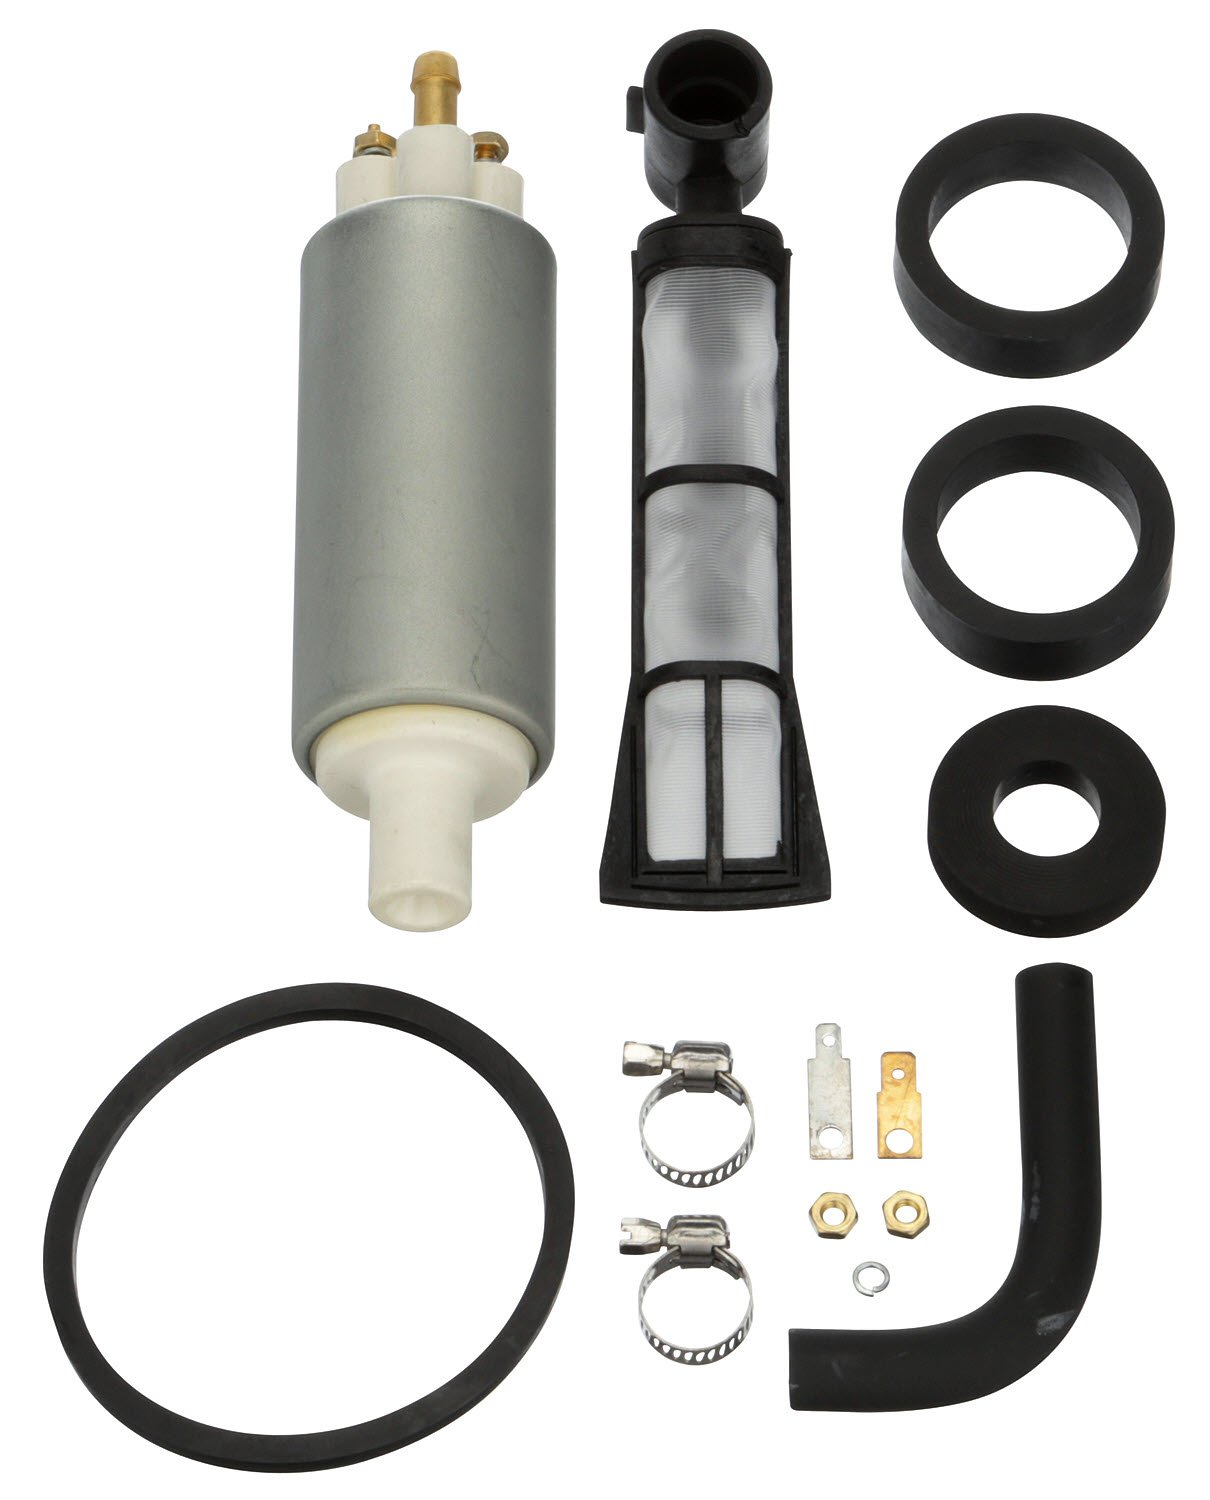 Carter P74155 Fuel Pump and Strainer Set